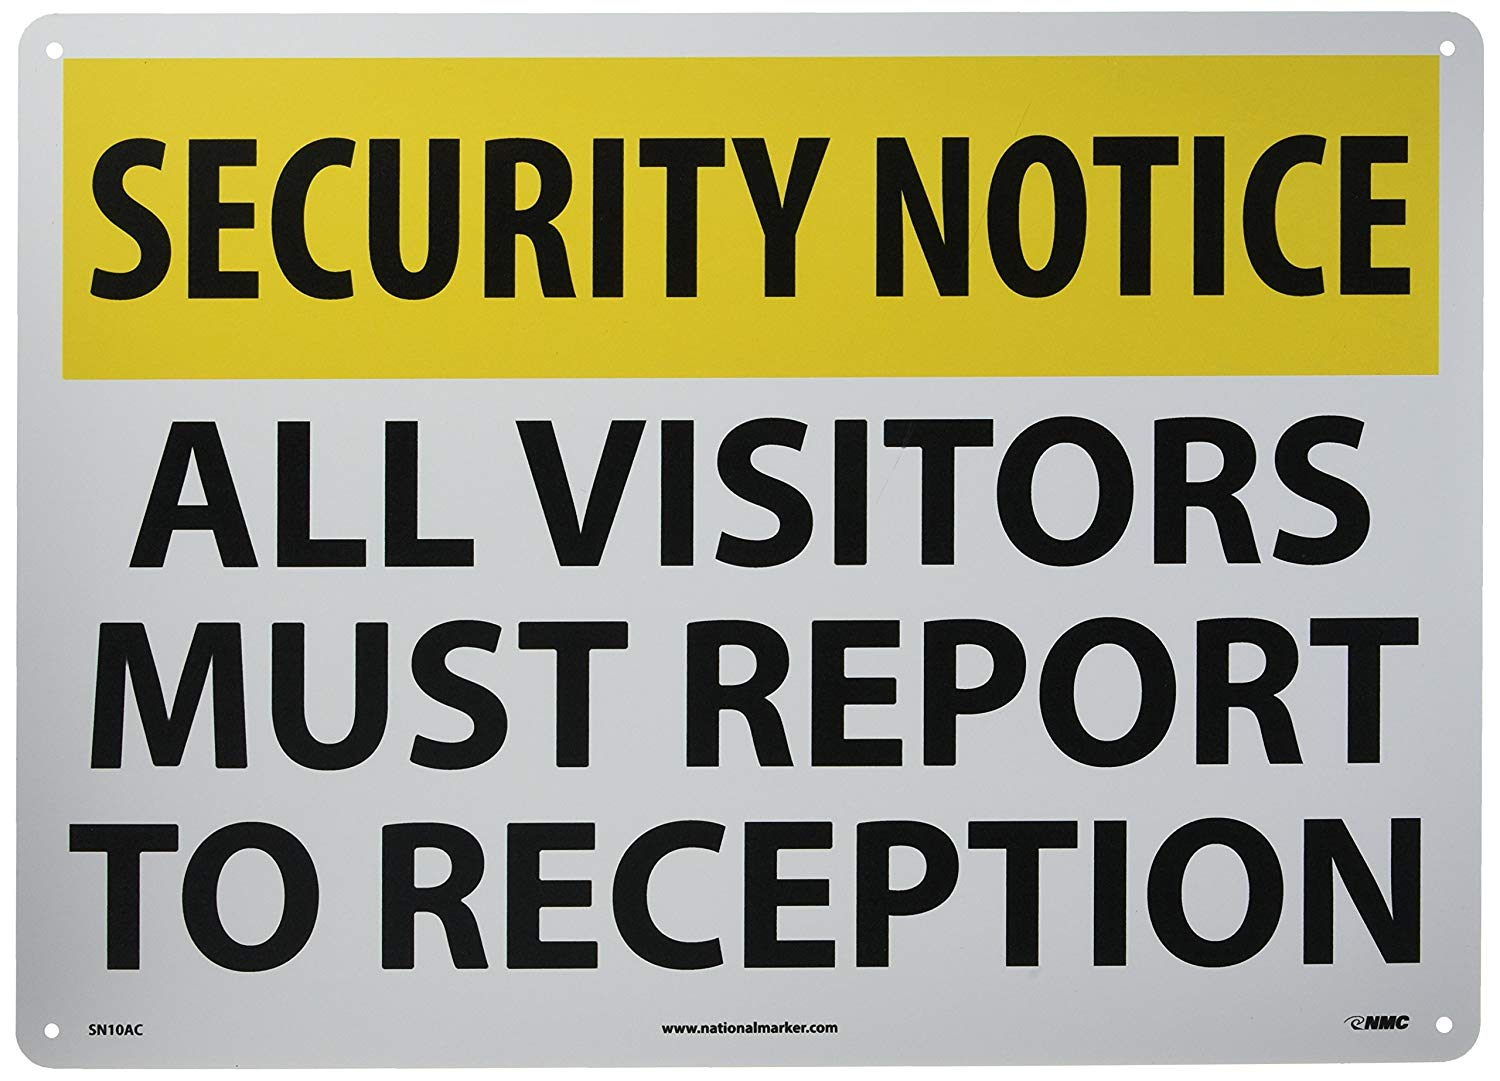 "NMC SN10AC Security Sign, Legend ""SECURITY NOTICE - ALL VISITORS MUST REPORT TO RECEPTION"", 20"" Length x 14"" Height, Aluminum, Yellow/Black on White"